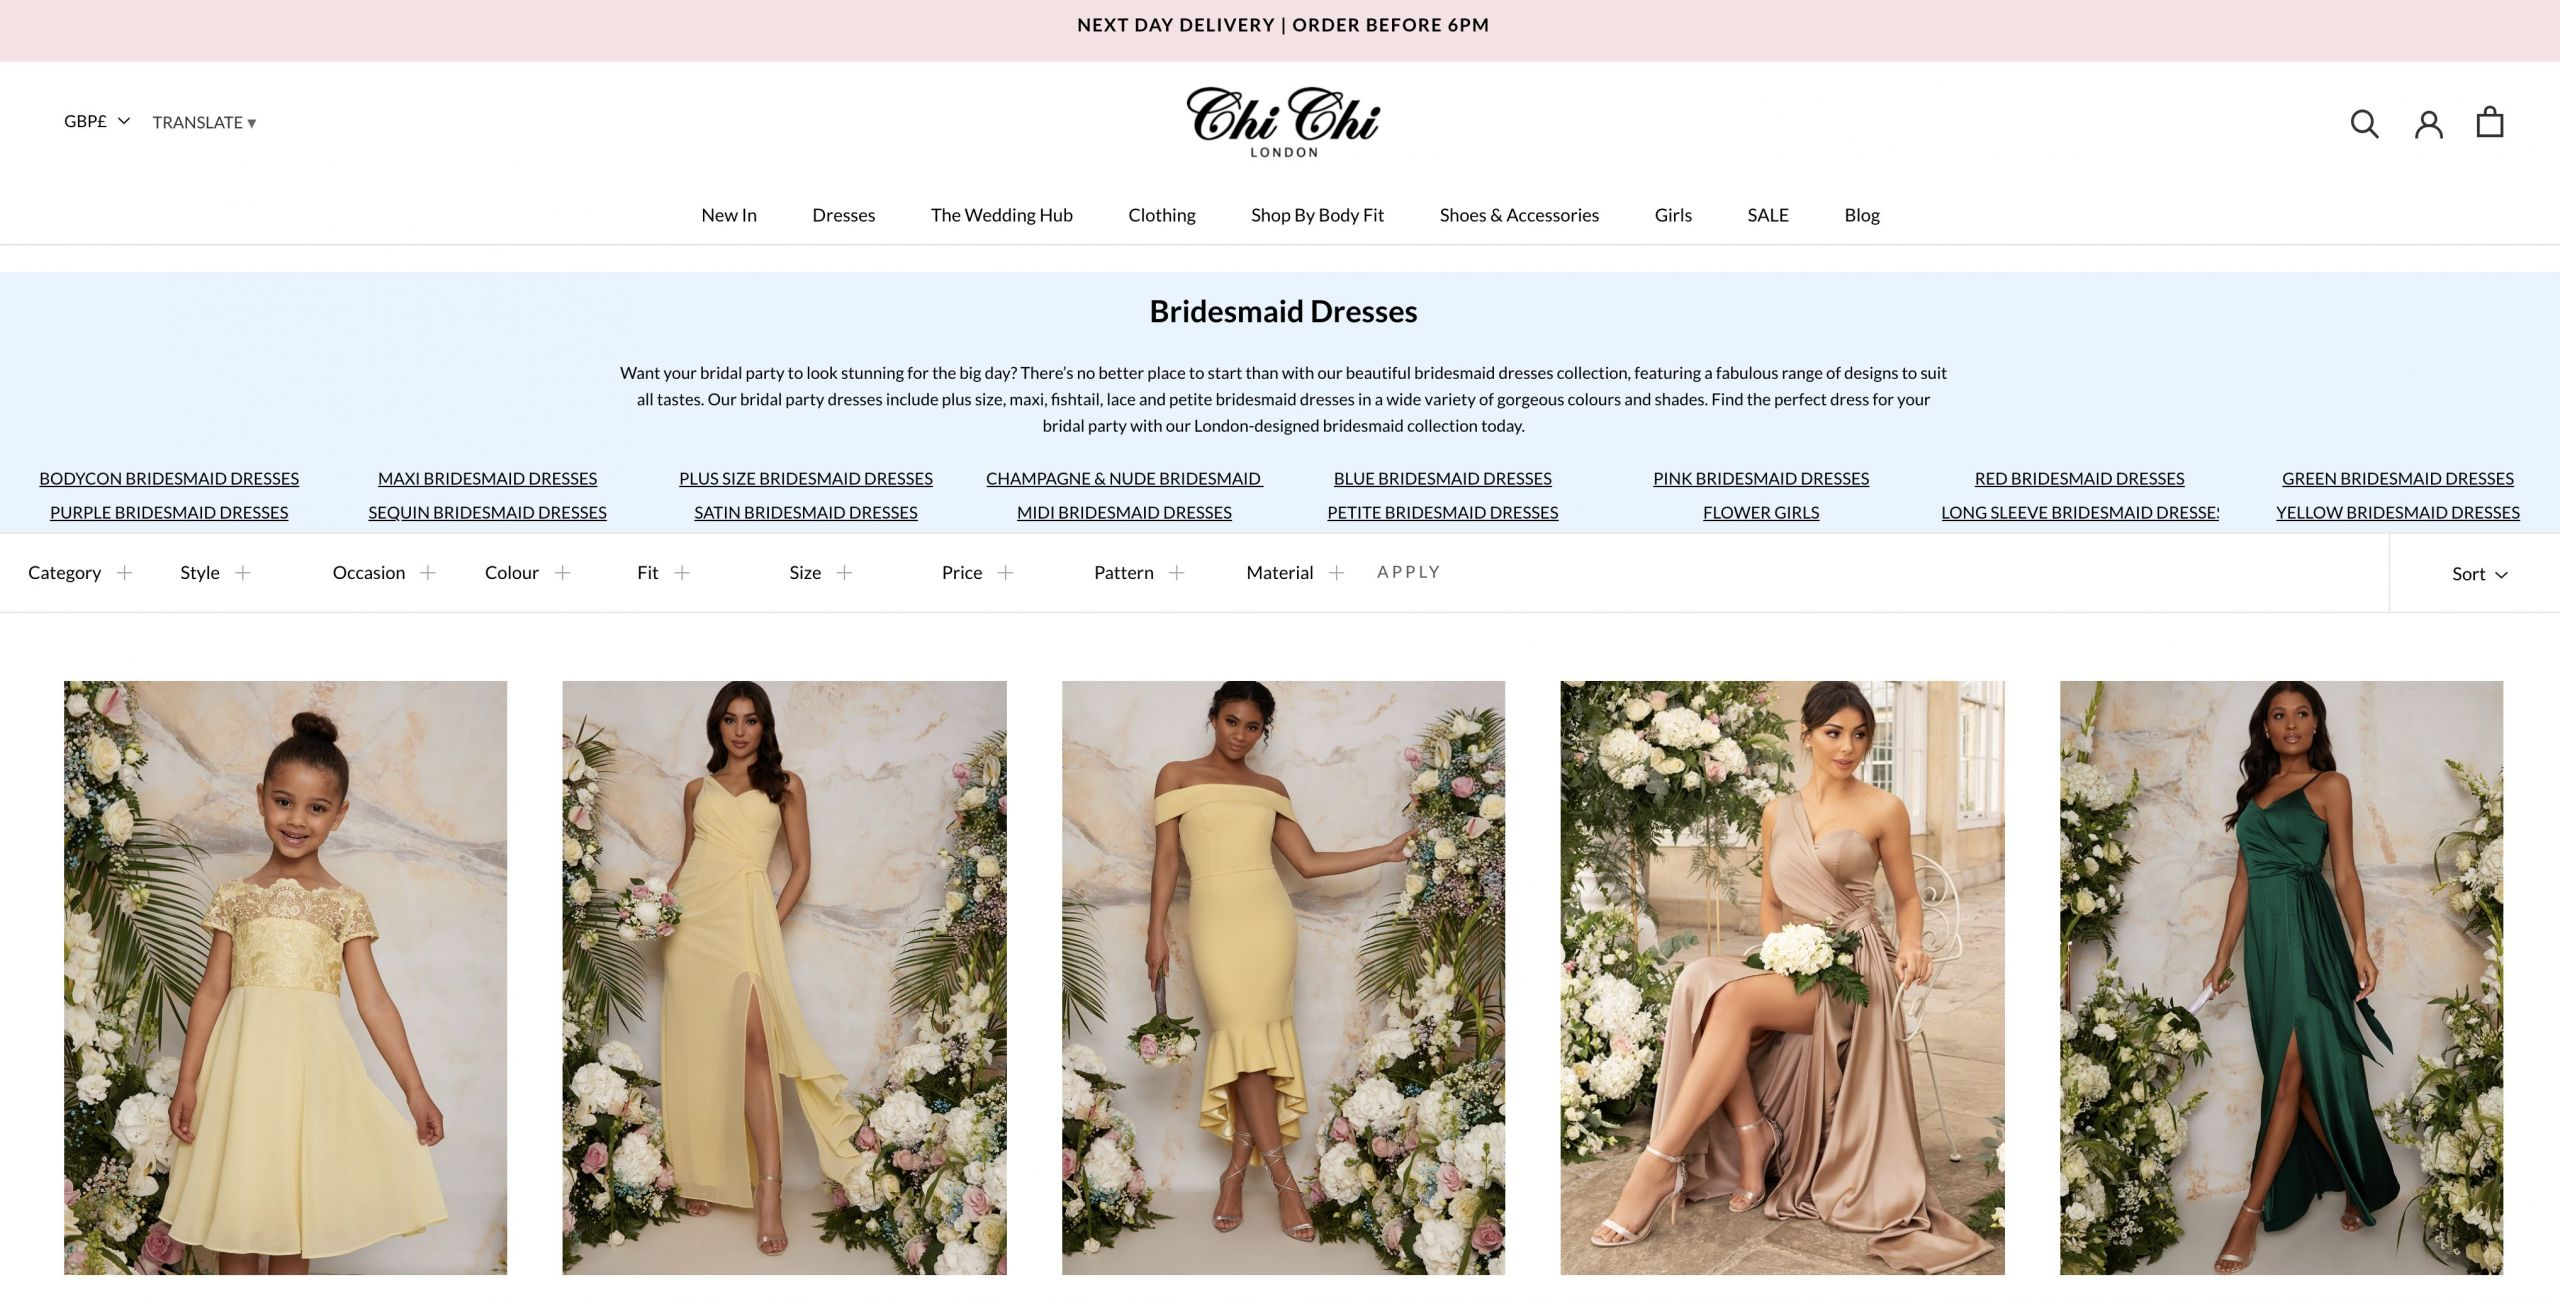 Chi Chi Clothing – SEO Project